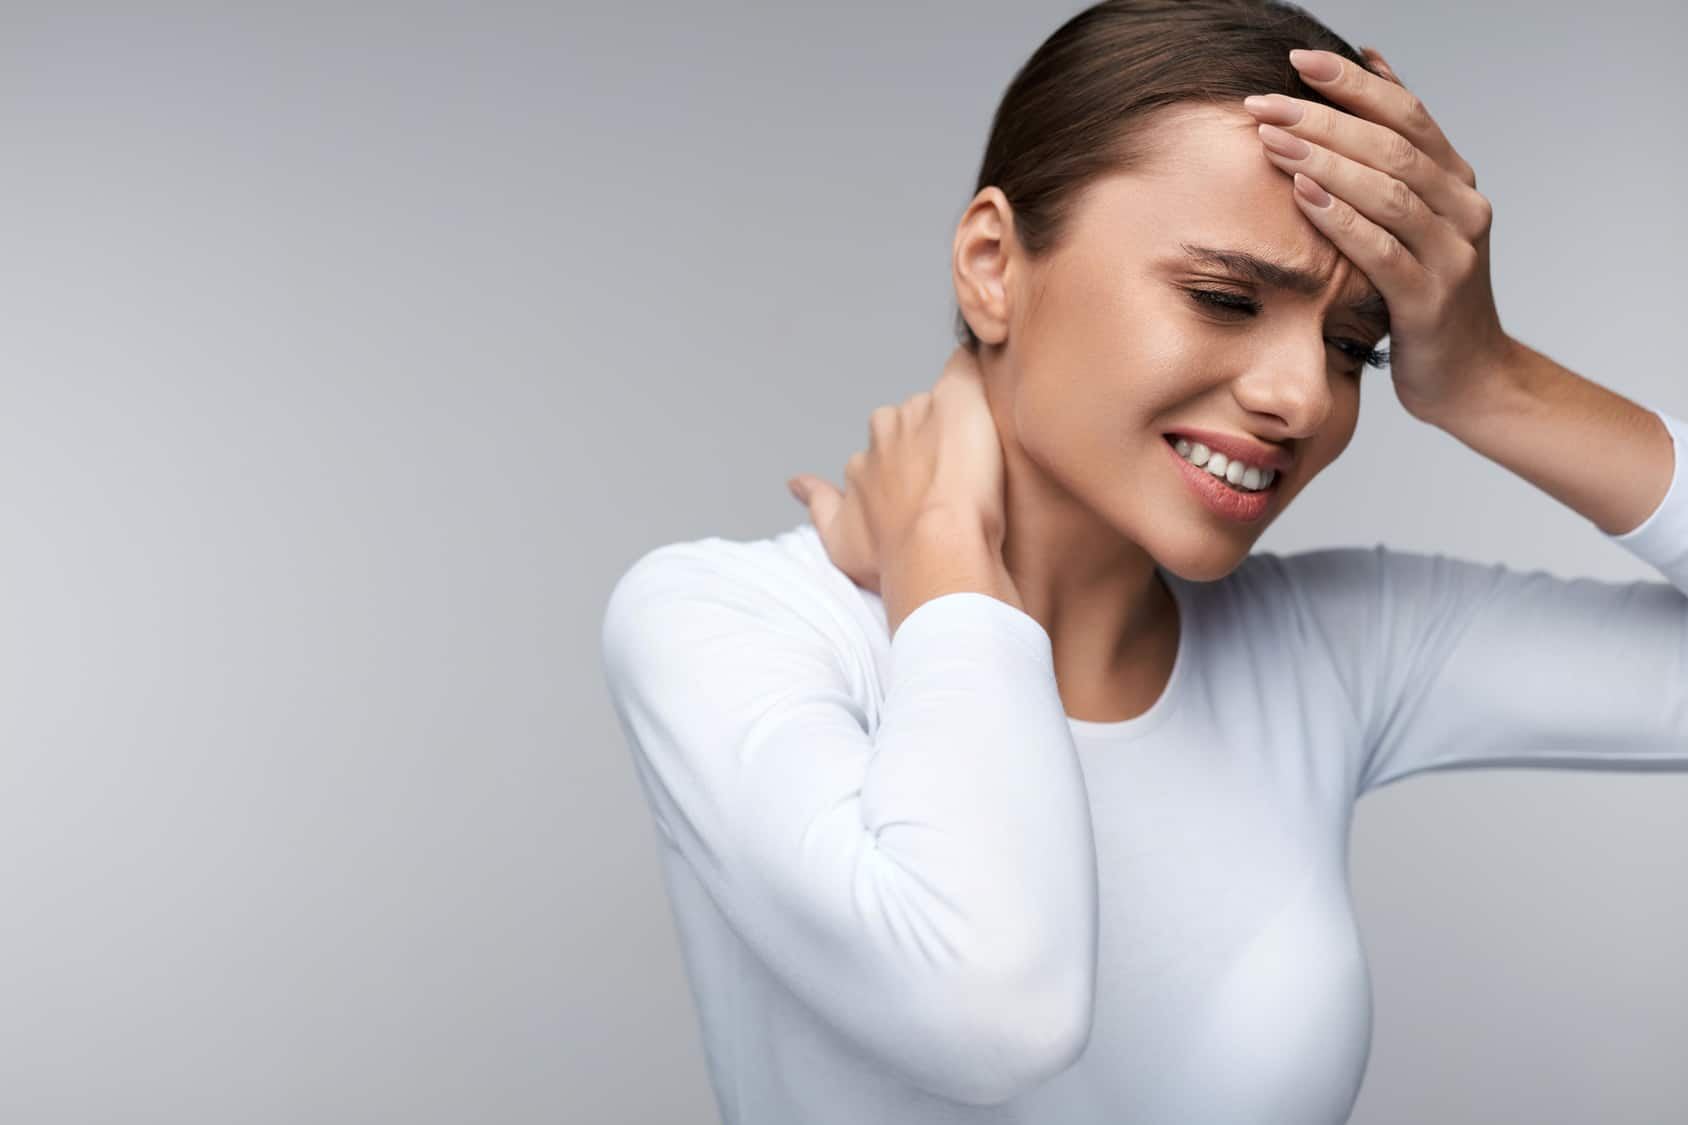 Physical Therapy Neck Pain Headaches Huntington Beach